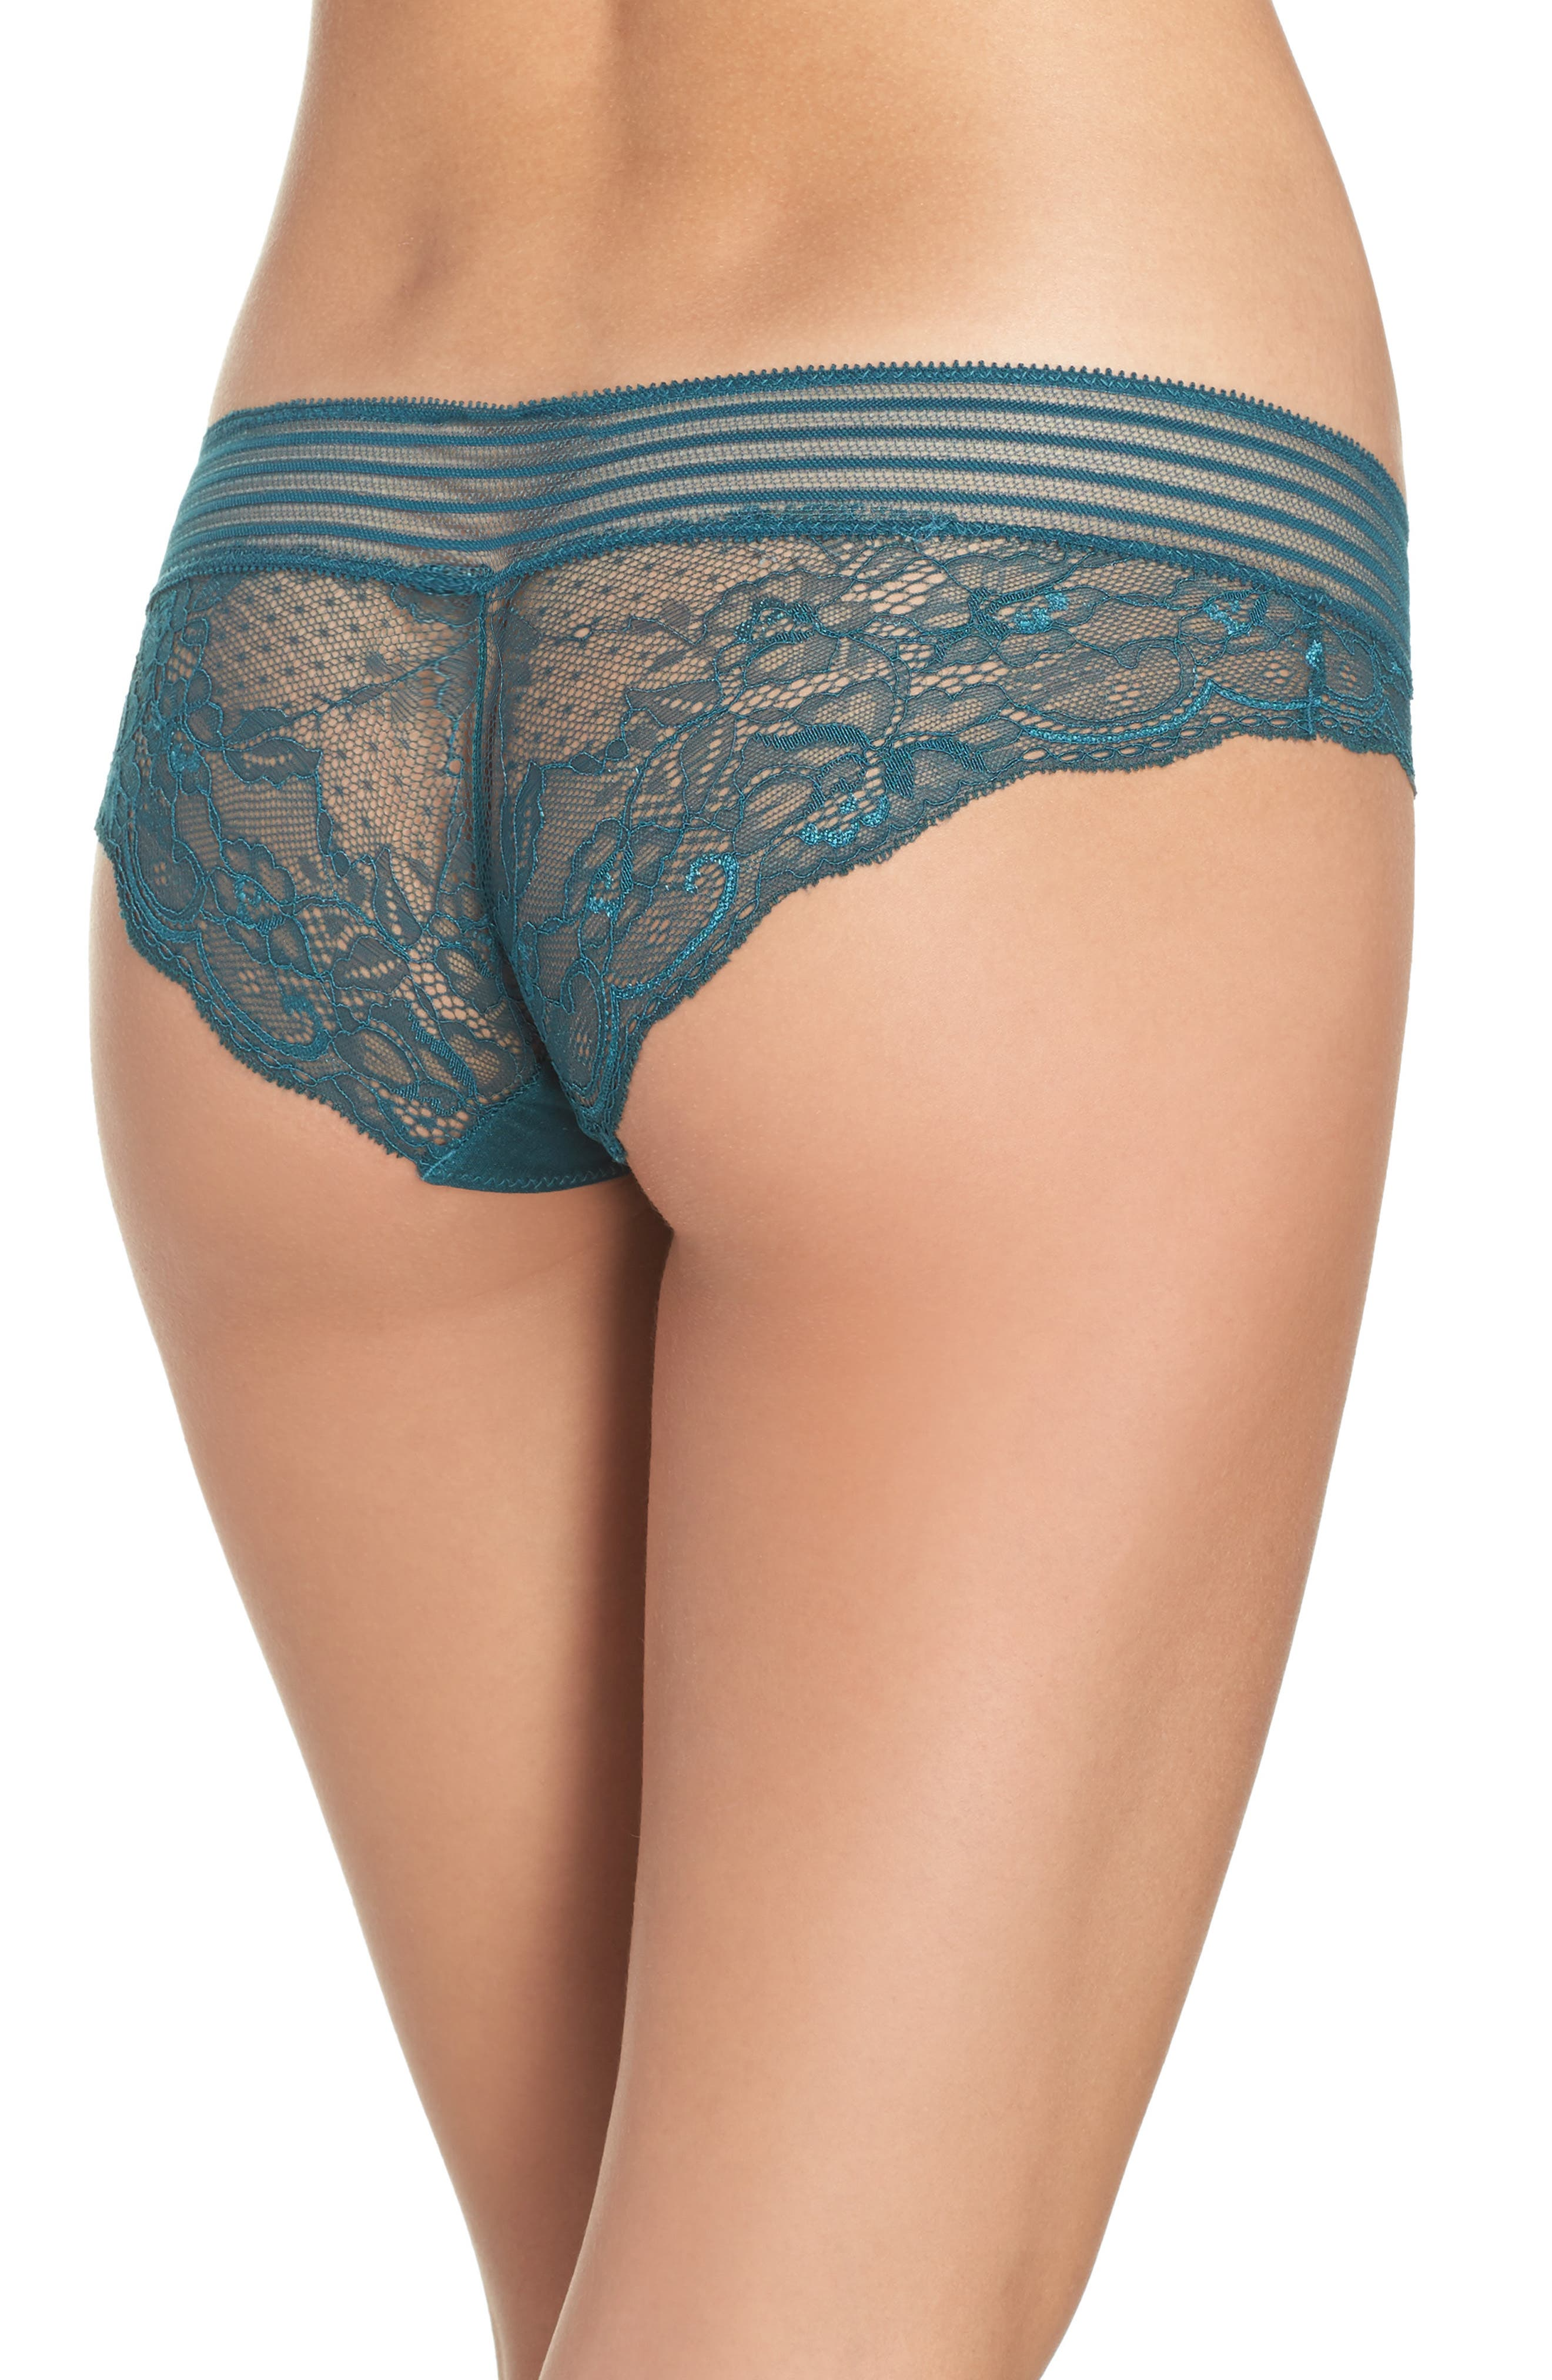 Alternate Image 2  - Sam Edelman Lace Hipster Panties (3 for $33)